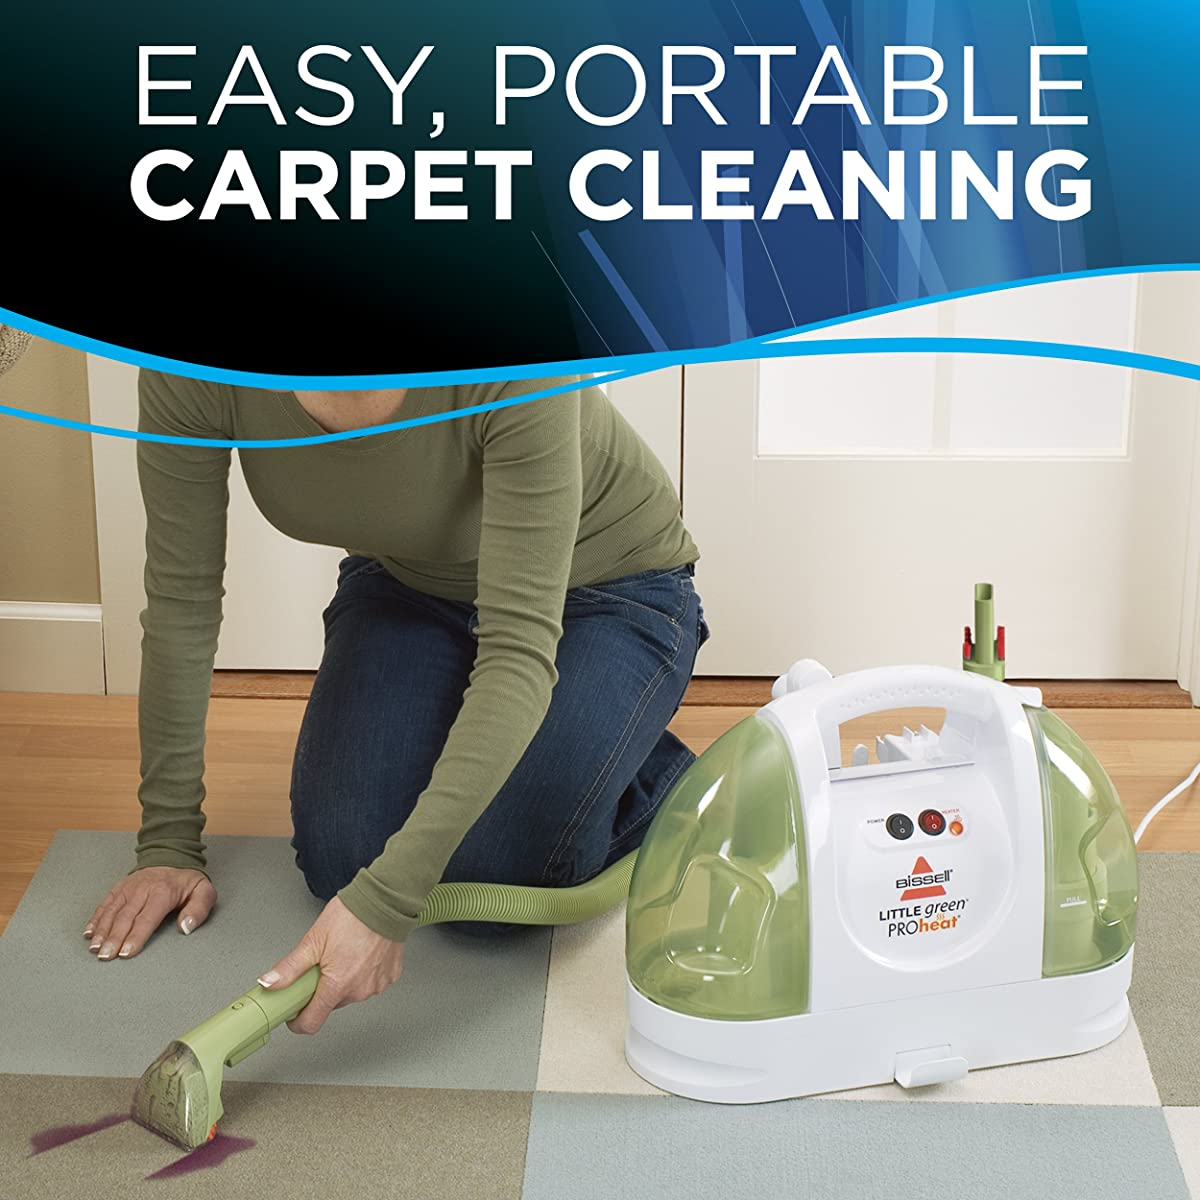 BISSELL Little Green ProHeat Compact Multi-Purpose Carpet Cleaner, 14259 - Corded